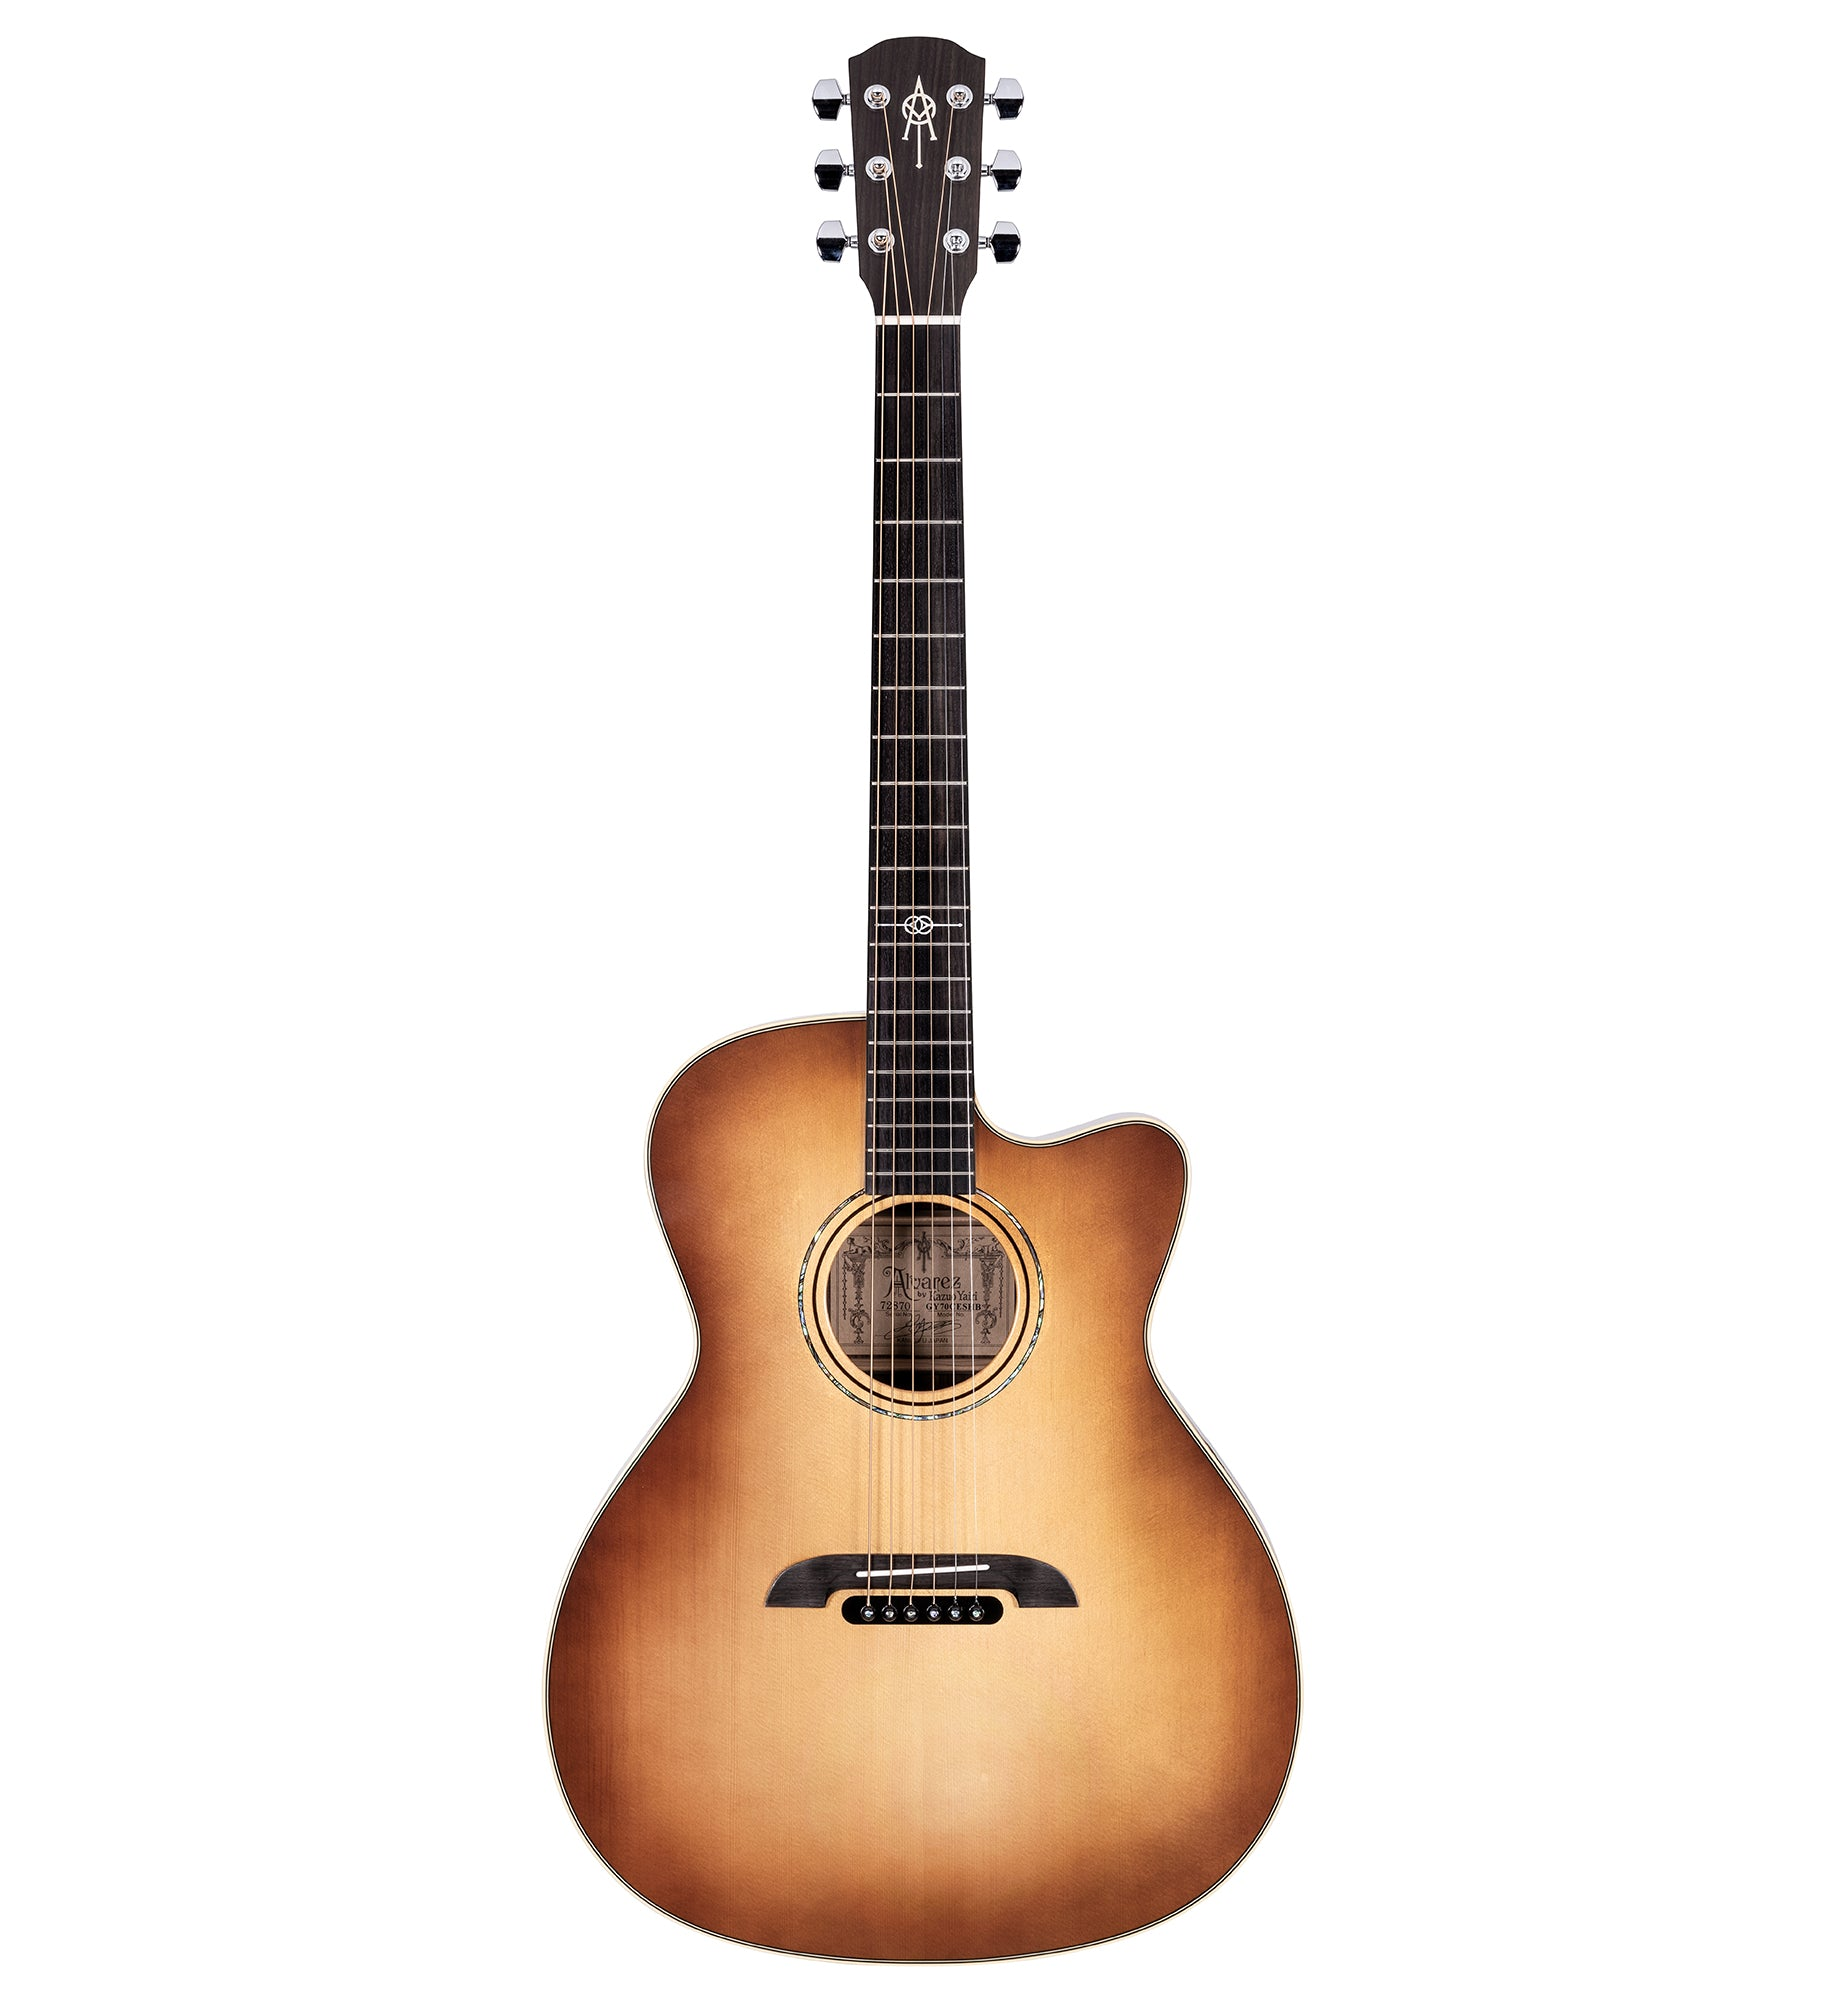 Alvarez Yairi Standard Series GY70CE SHB Grand Auditorium Acoustic Electric Guitar